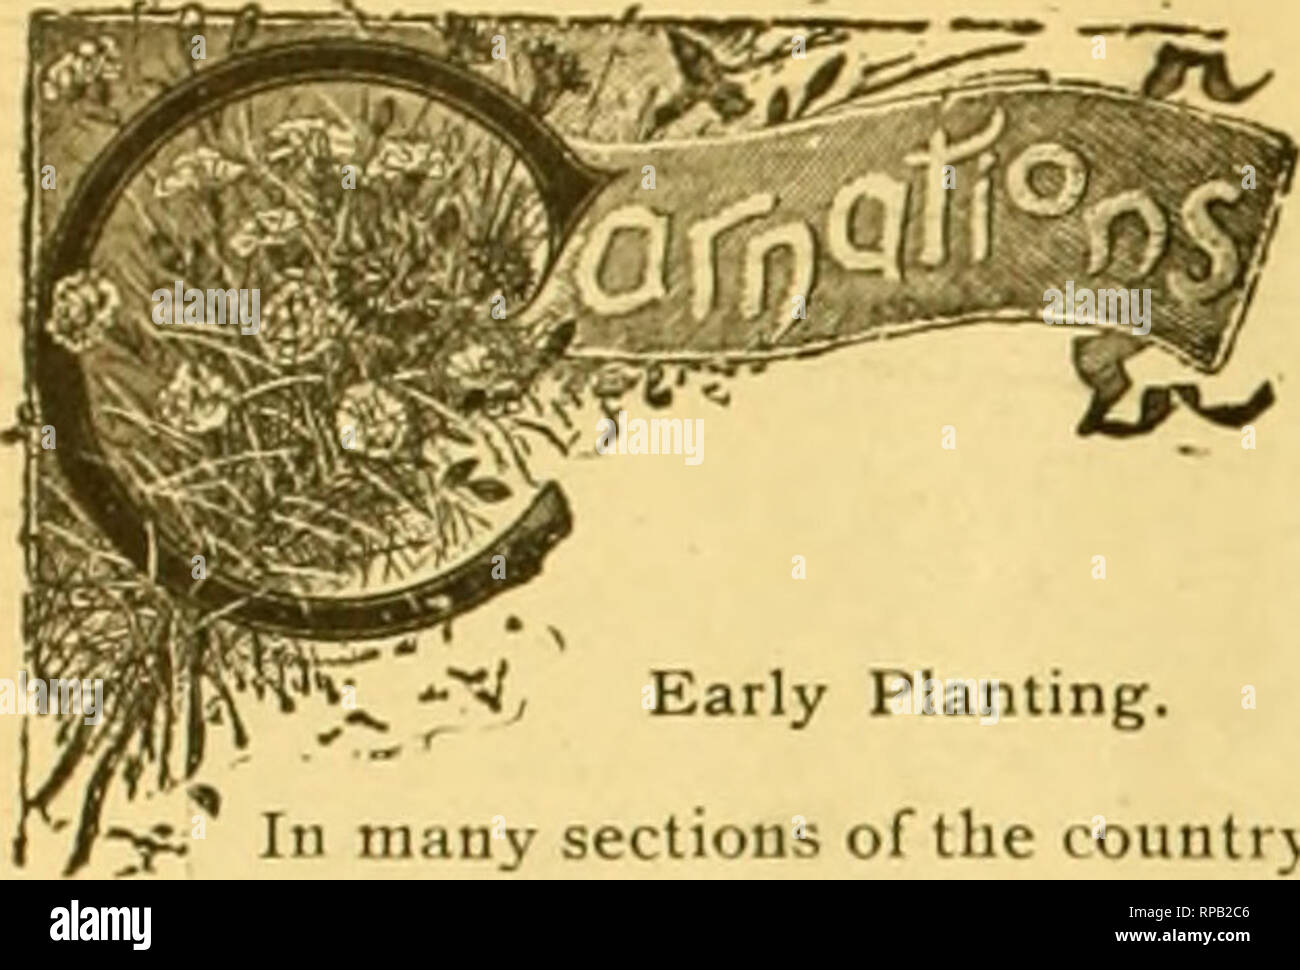 . The American florist : a weekly journal for the trade. Floriculture; Florists. 398 The American Florist. April yj.. Early Planting. f-y. In many sections of the country, the weather will now be sutticiently open, and the ground in good enough condition for planting out young carnations for next season's use. I am inclined to lay great stress on early planting for carna- tions and all similar stock—a touch of frost won't hurt them, providing they have been properly handled—and it is very important to get them established before hot weather sets in ; during their subsef ueut treatment, have an - Stock Image